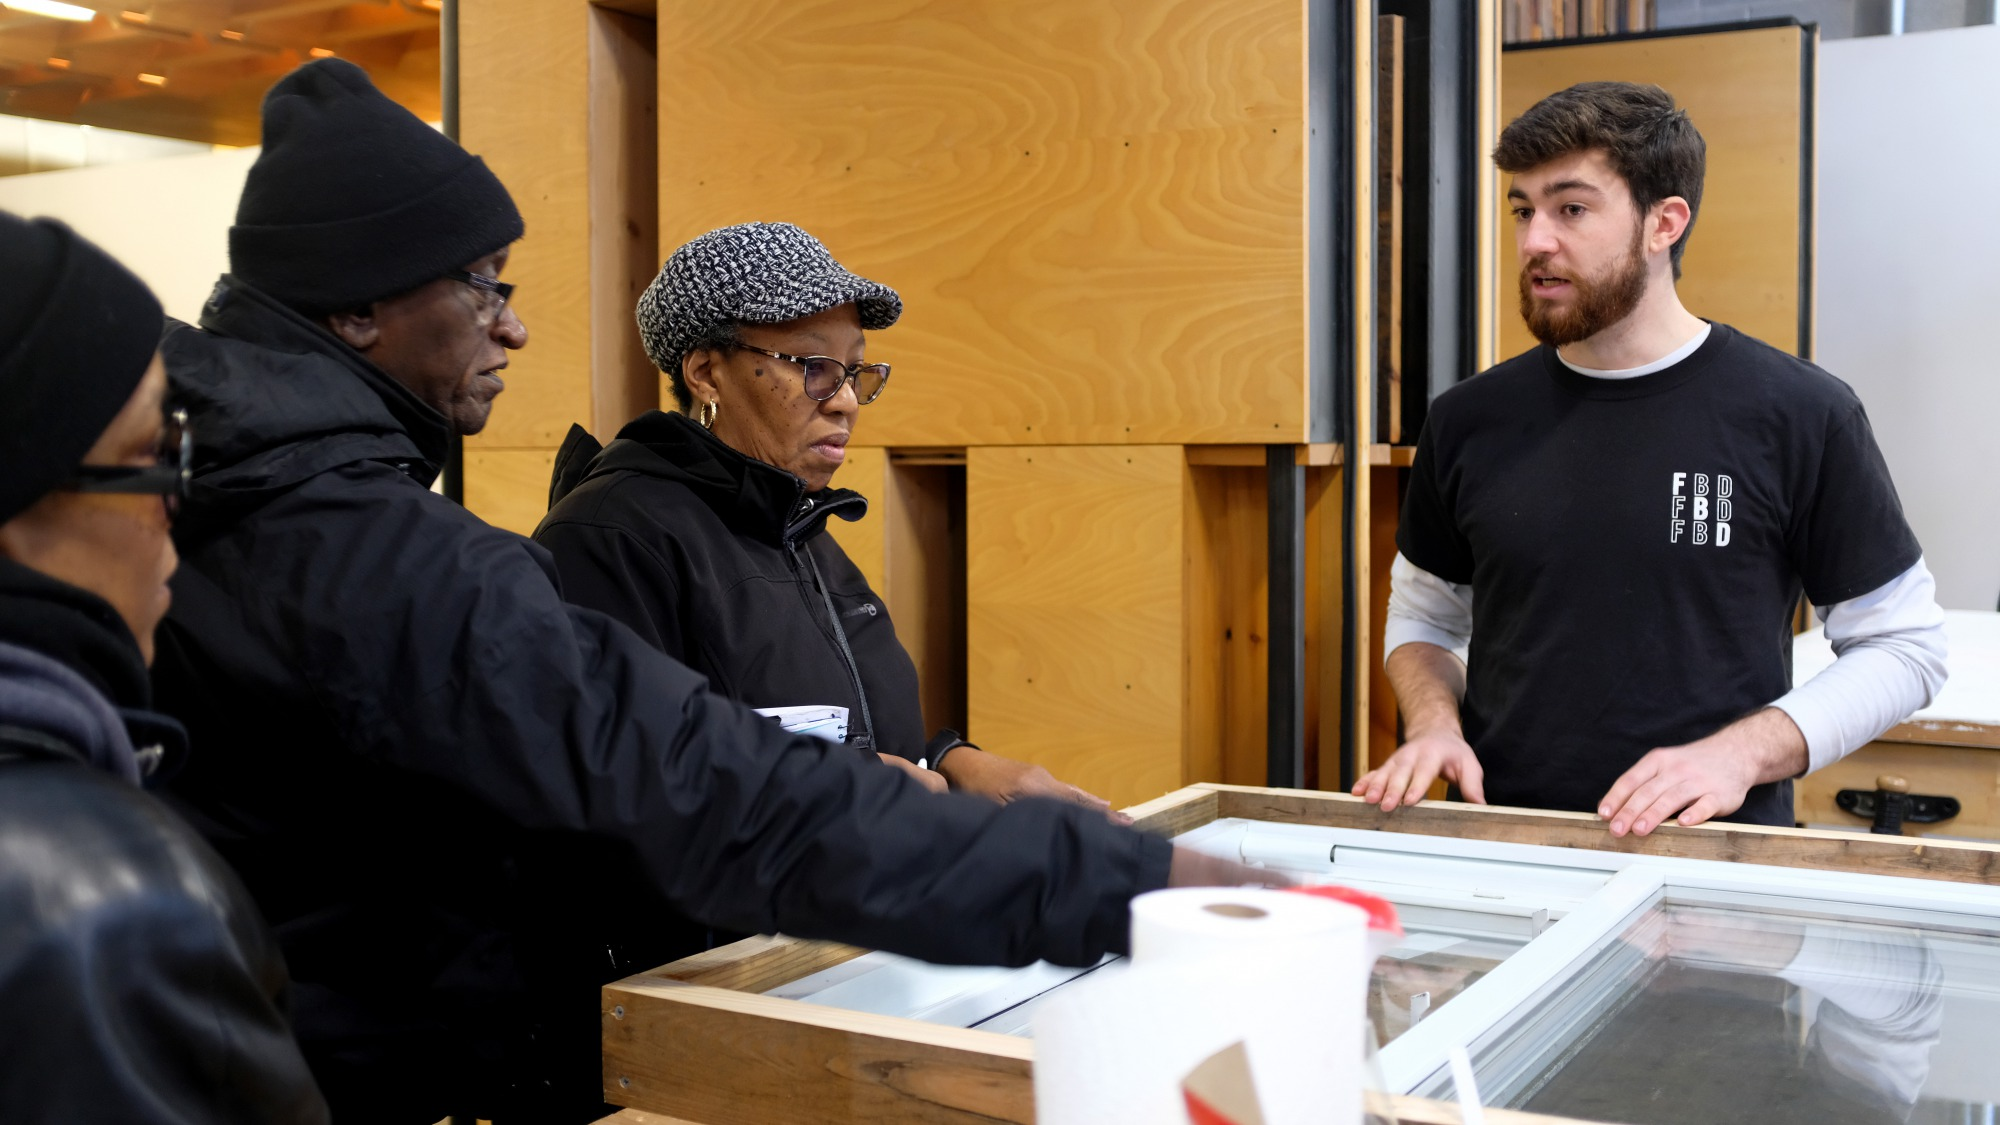 Pittsburgh residents learn about the contents of the Freedom by Design weatherization kits